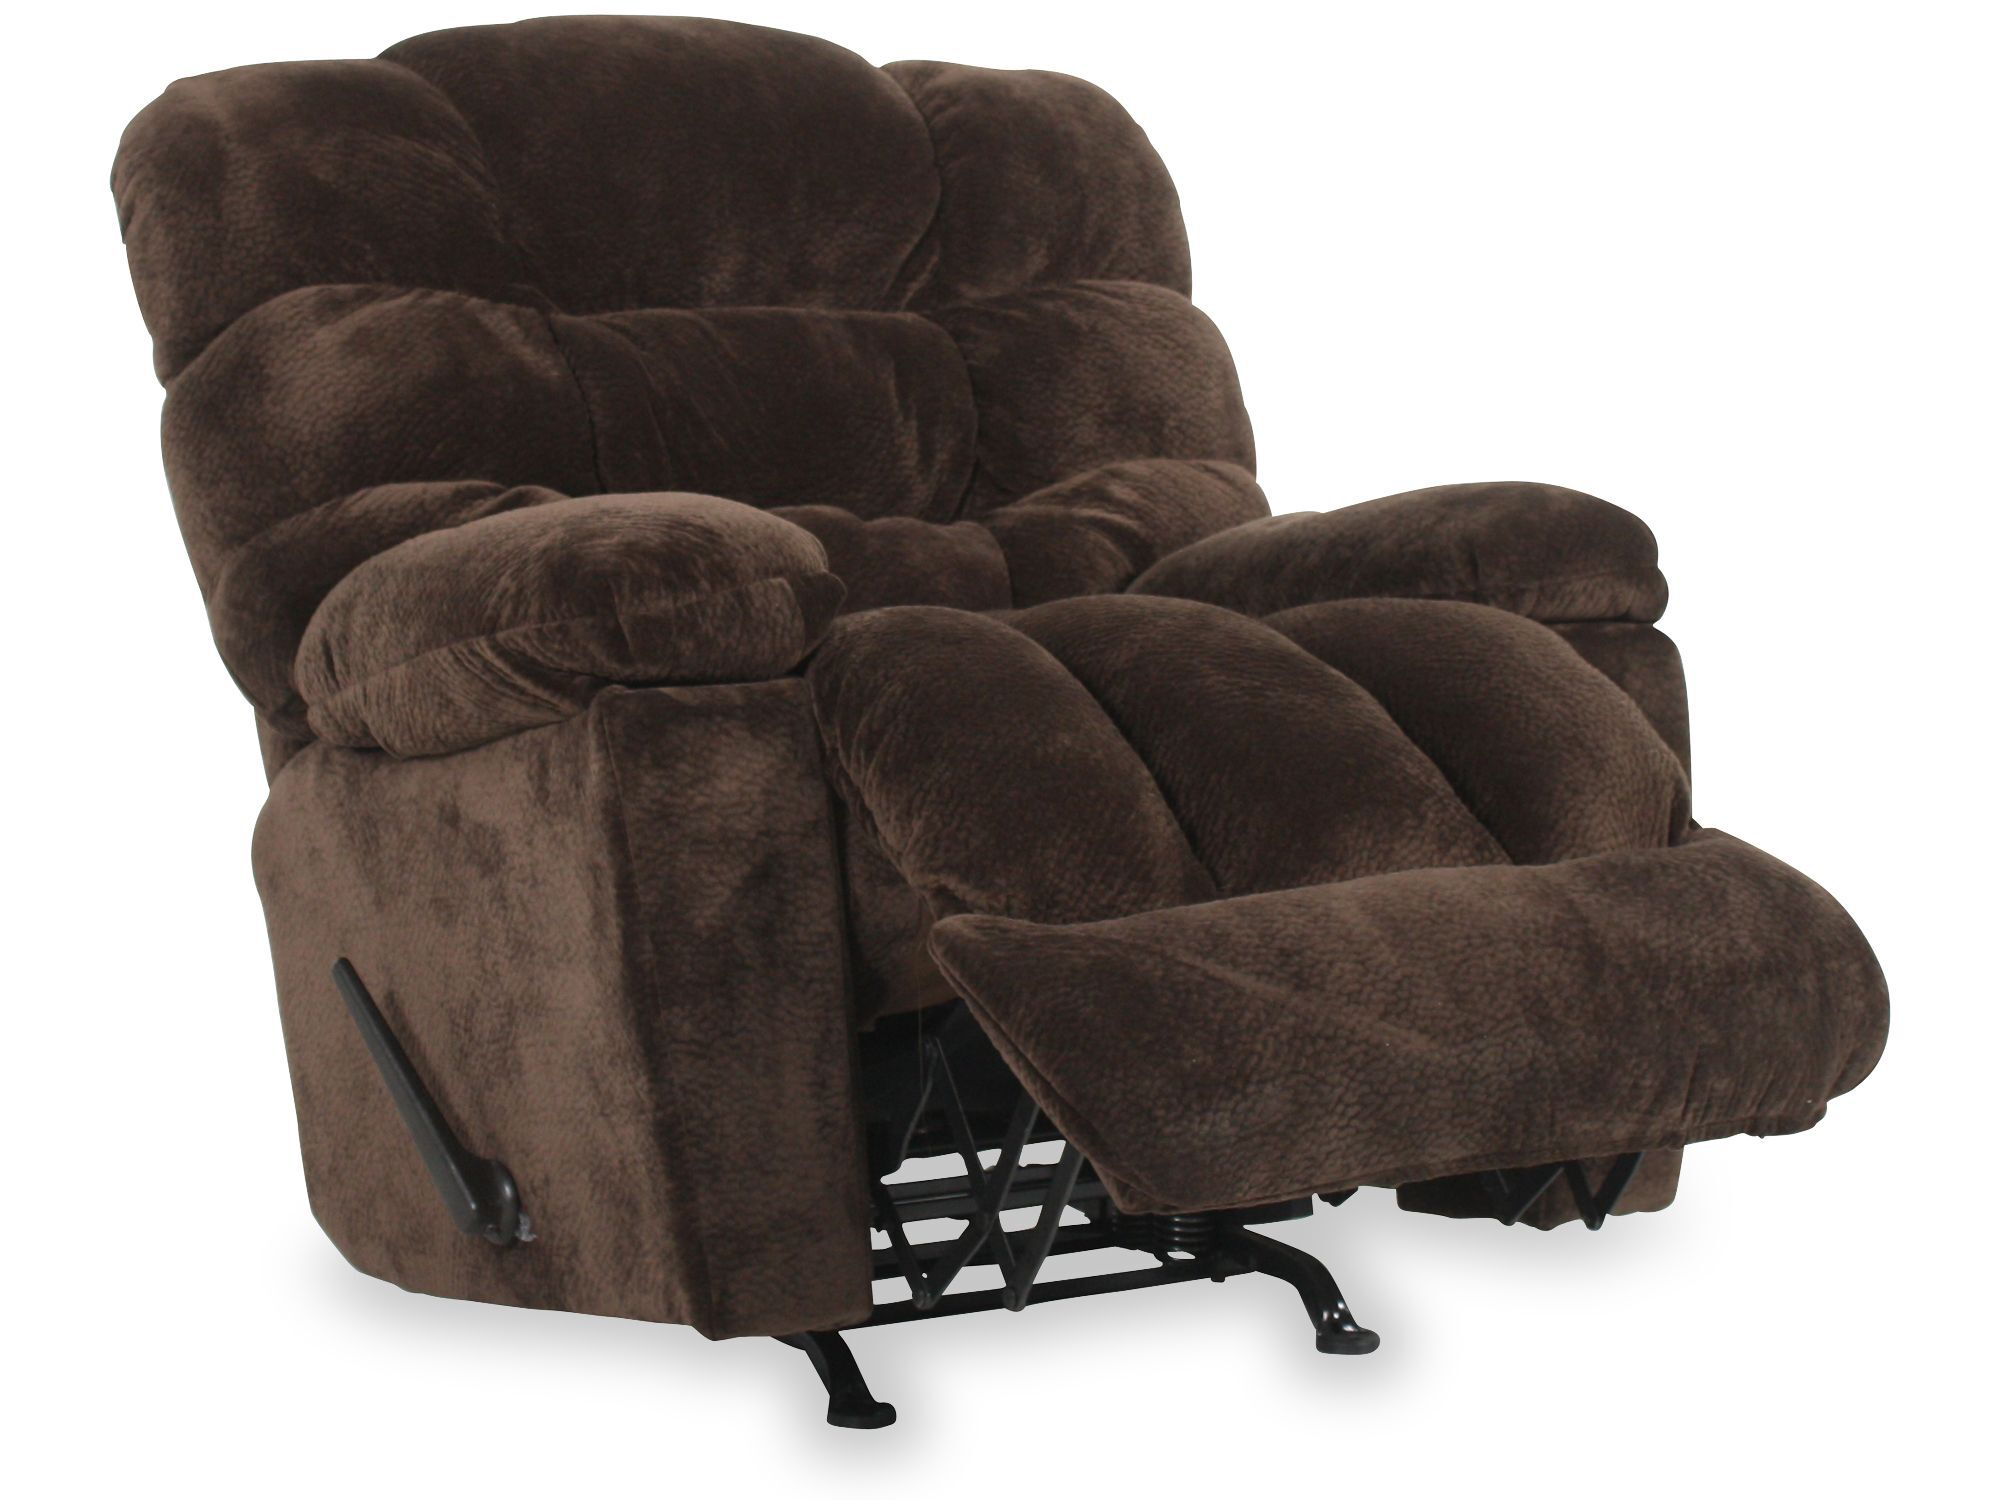 Etonnant Casual 43u0026quot; Wall Saver Recliner With Storage Arm In Chocolate